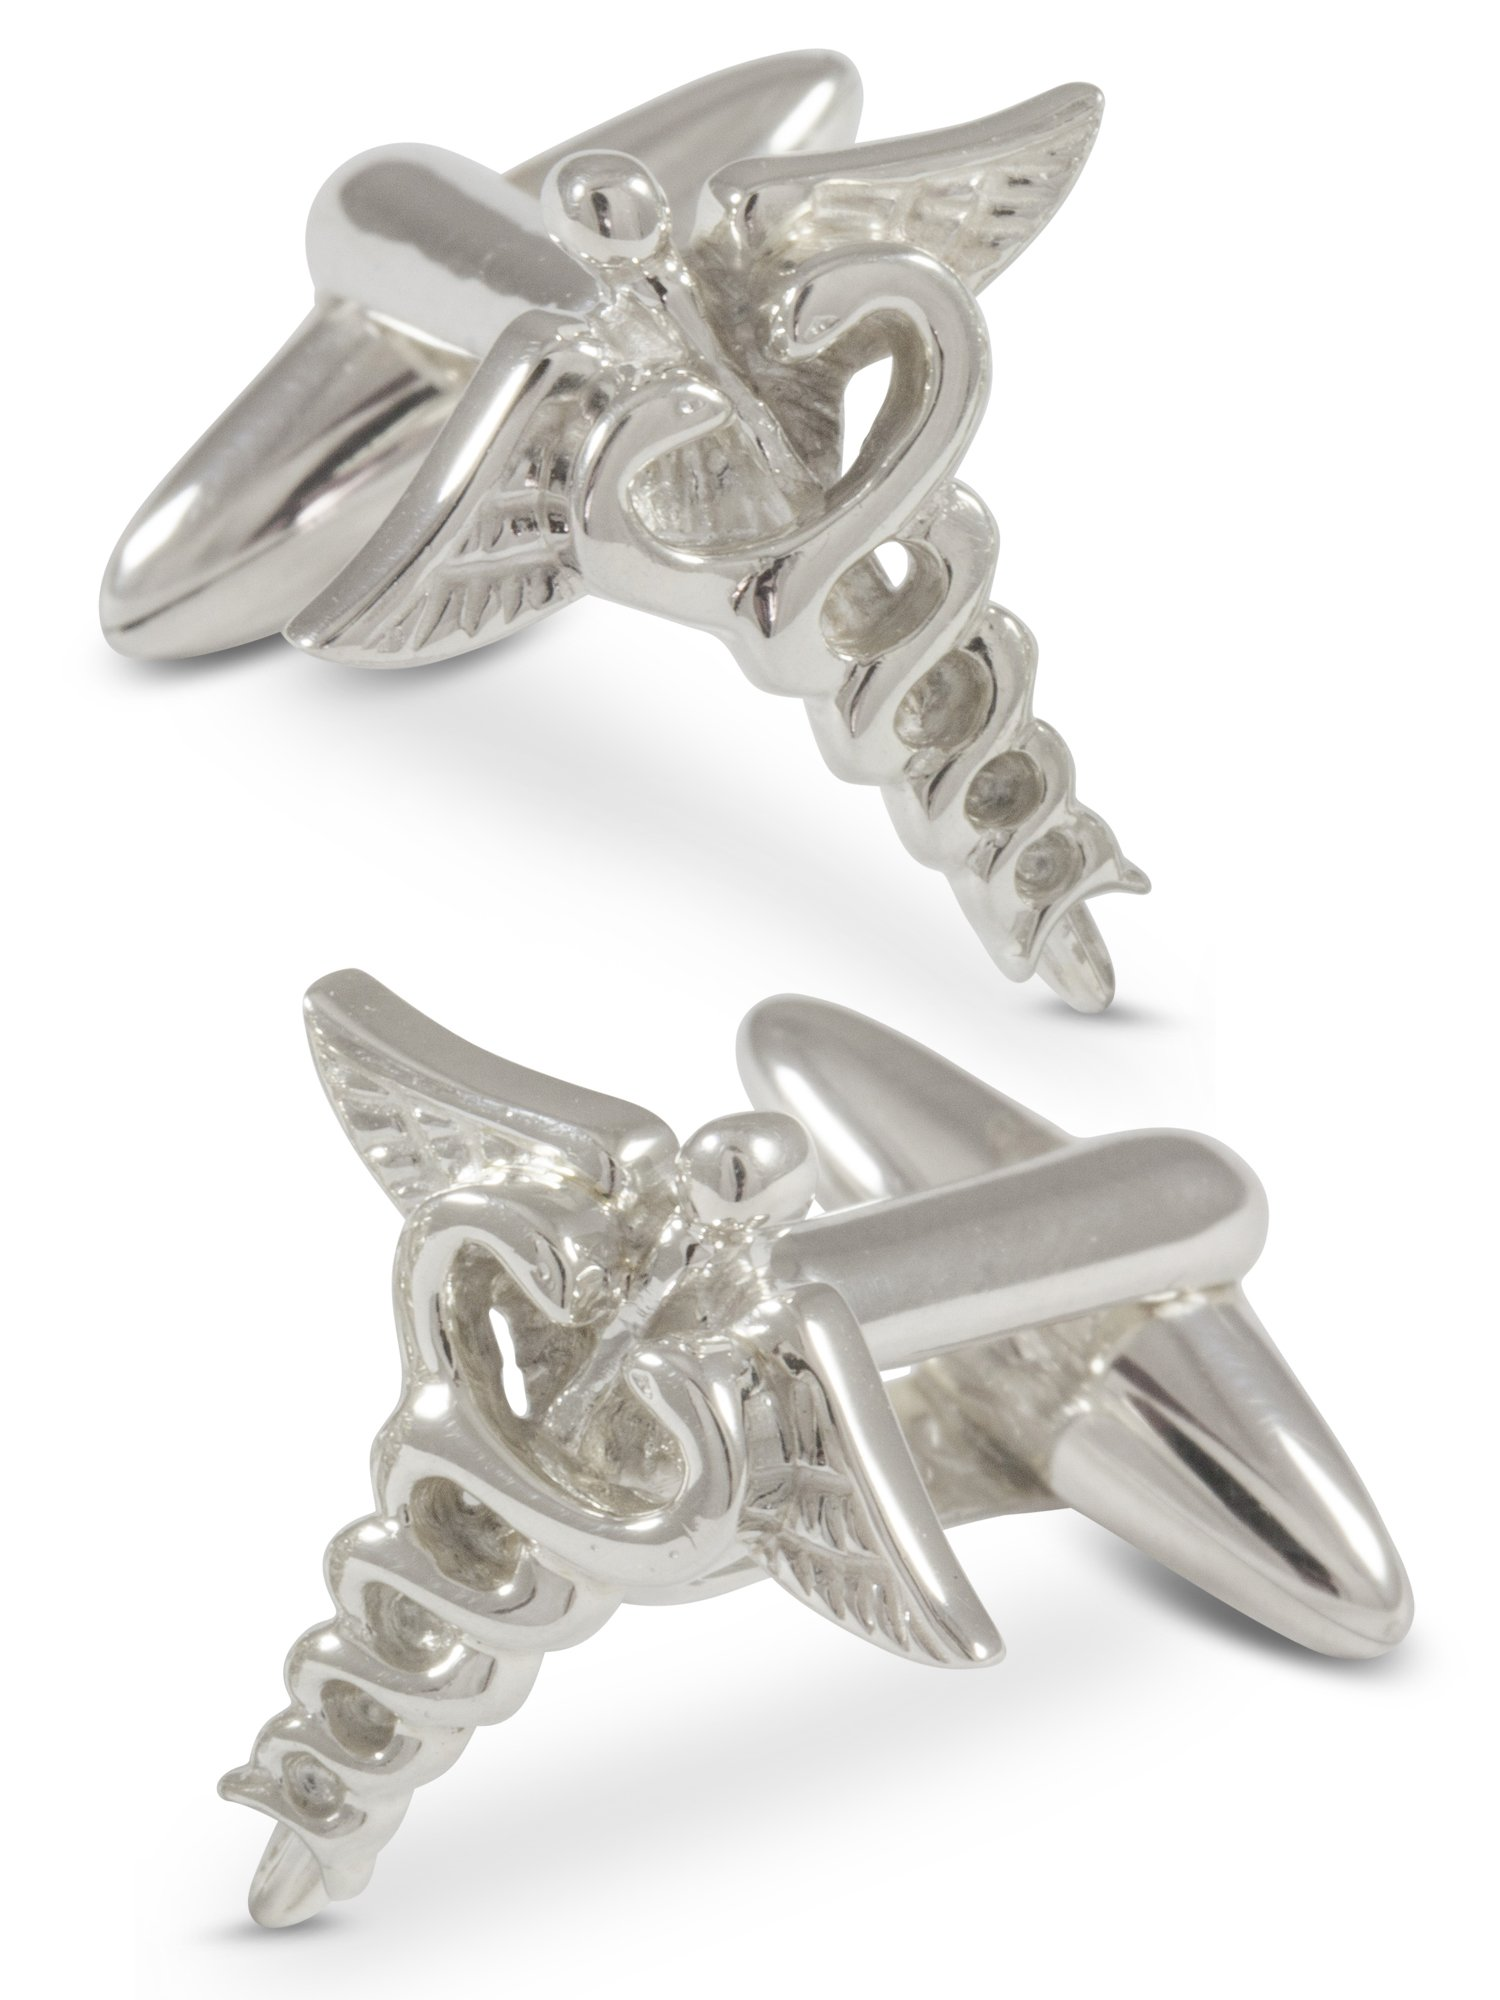 ZAUNICK Medical Doctor Caduceus Cufflinks, Sterling Silver by ZAUNICK (Image #1)